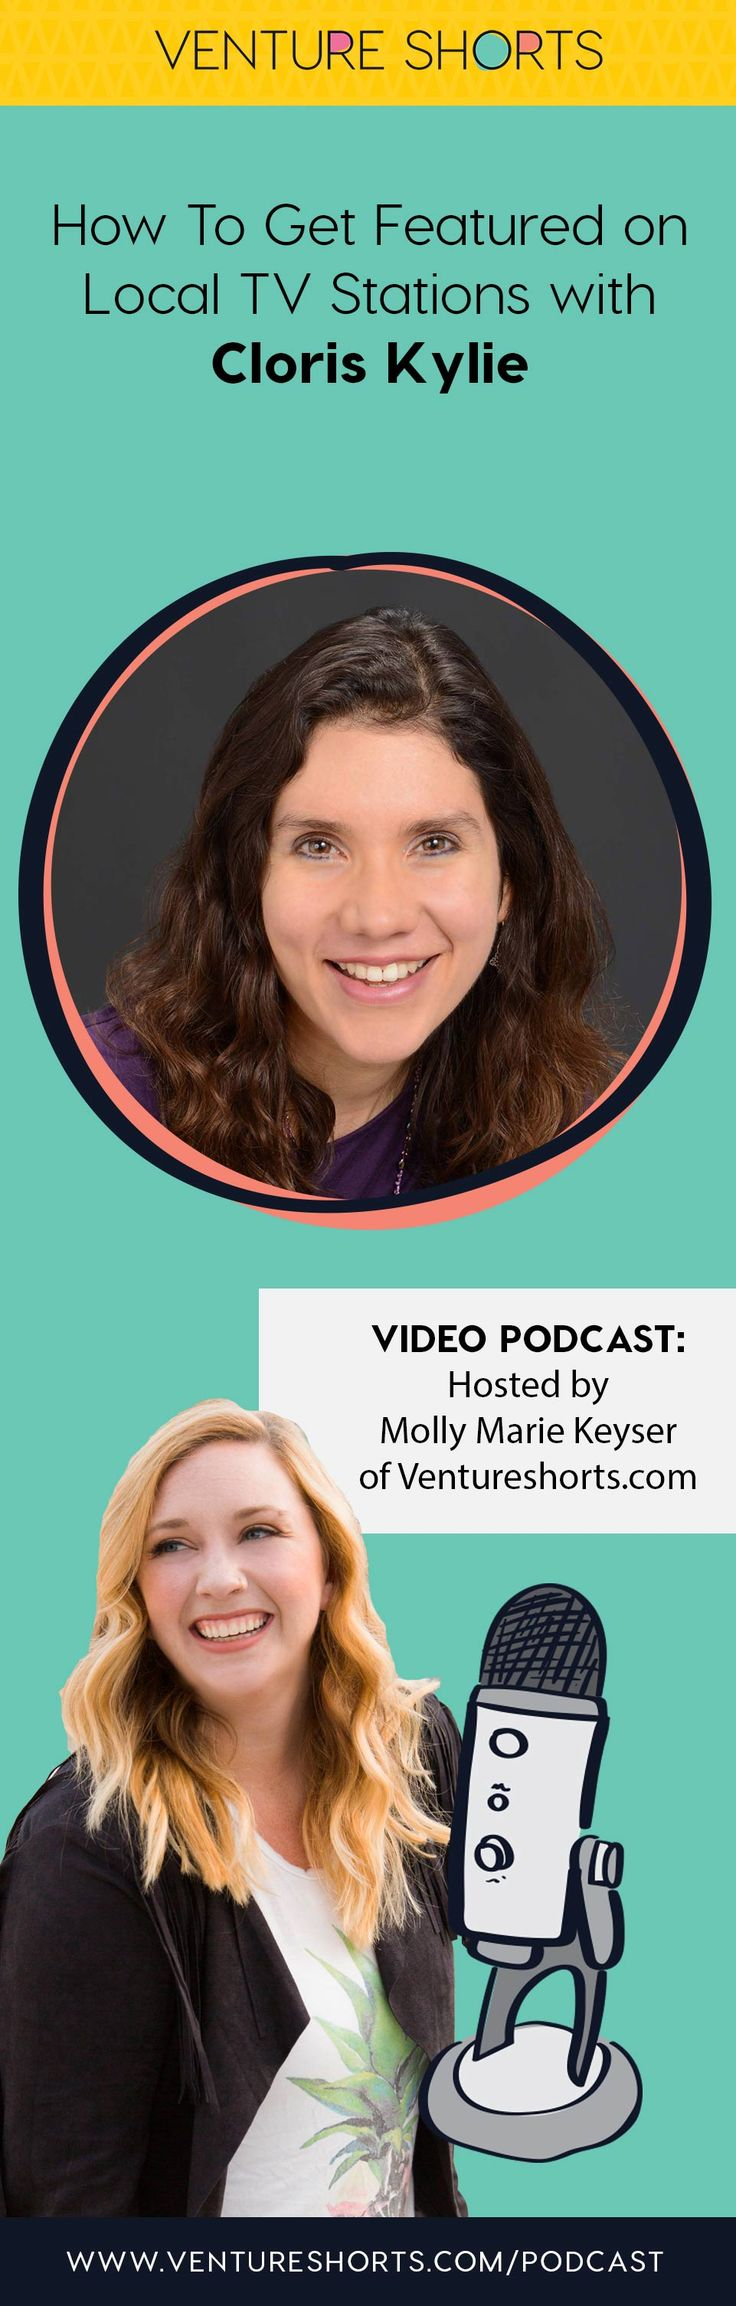 EPISODE 123 – Cloris Kylie and How To Get Featured on Local TV Stations https://ventureshorts.com/cloris-kylie/ Cloris Kylie, Marketing MBA, helps entrepreneurs to attract the right clients so that they skyrocket their impact and revenue!  A sought-after speaker, trainer, and author, Cloris has been featured on various television and radio shows, including top-ranked podcasts for entrepreneurs. Cloris's articles have been published on websites with millions of followers.